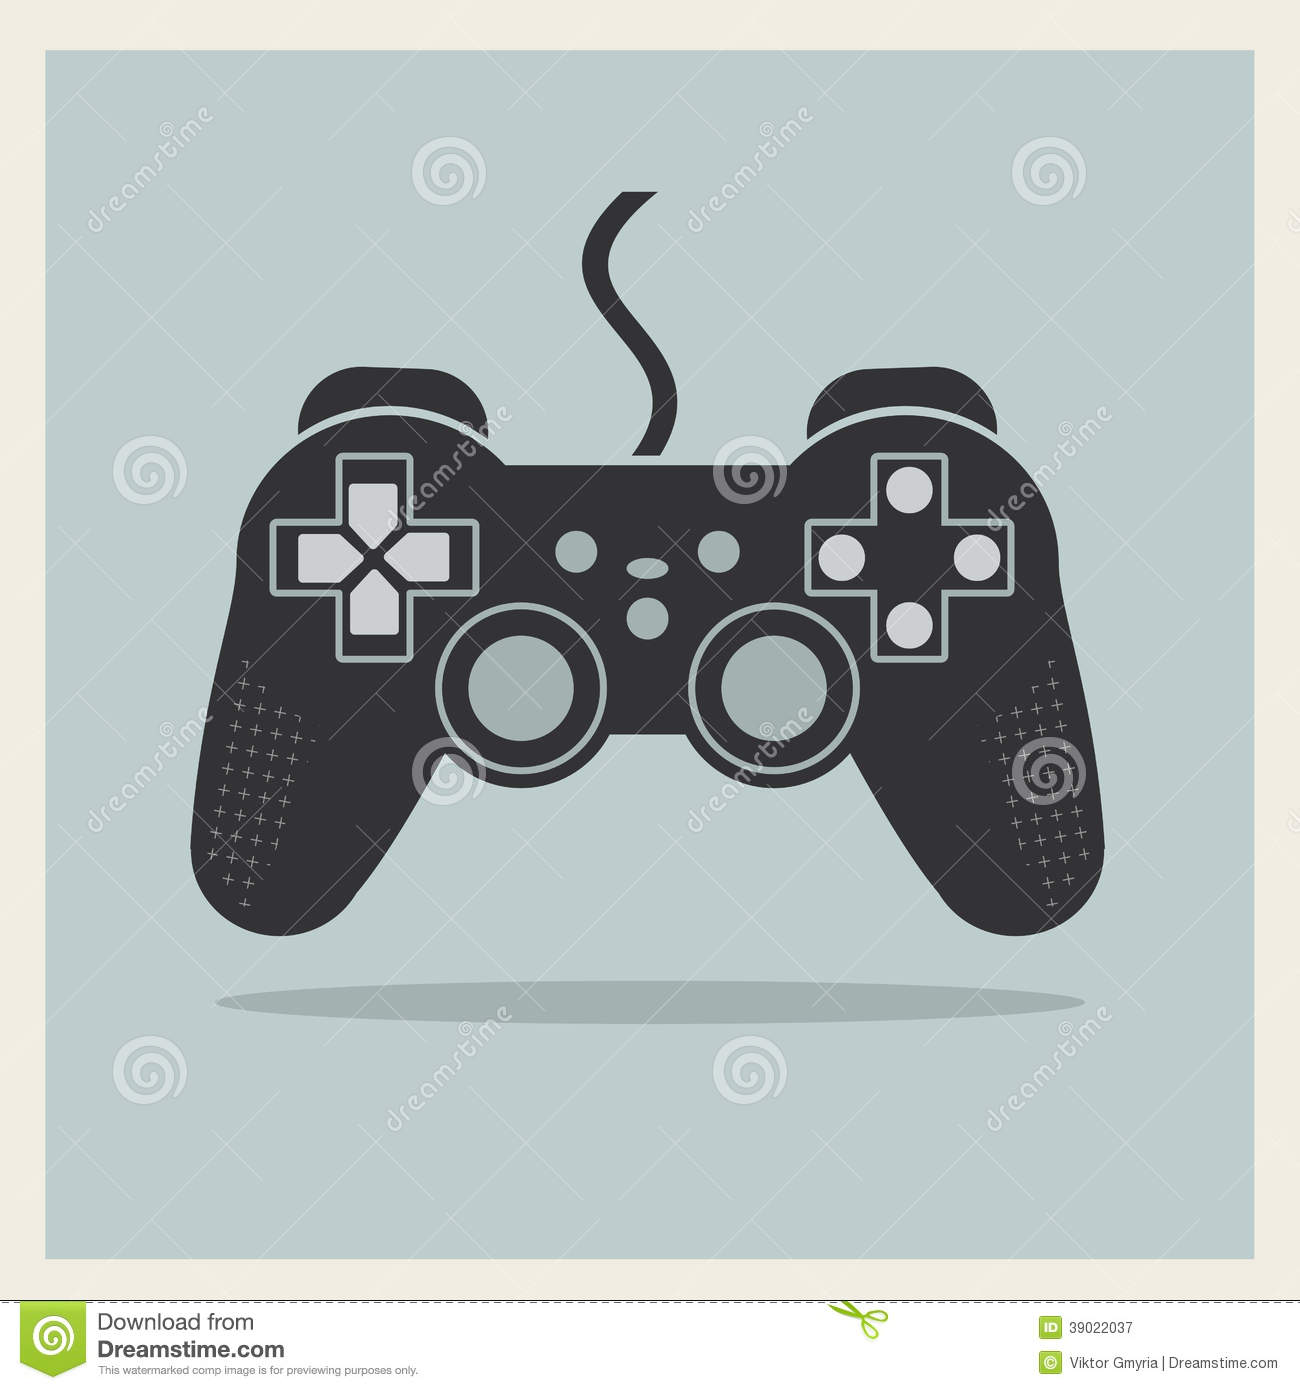 how to play computer games with a controller